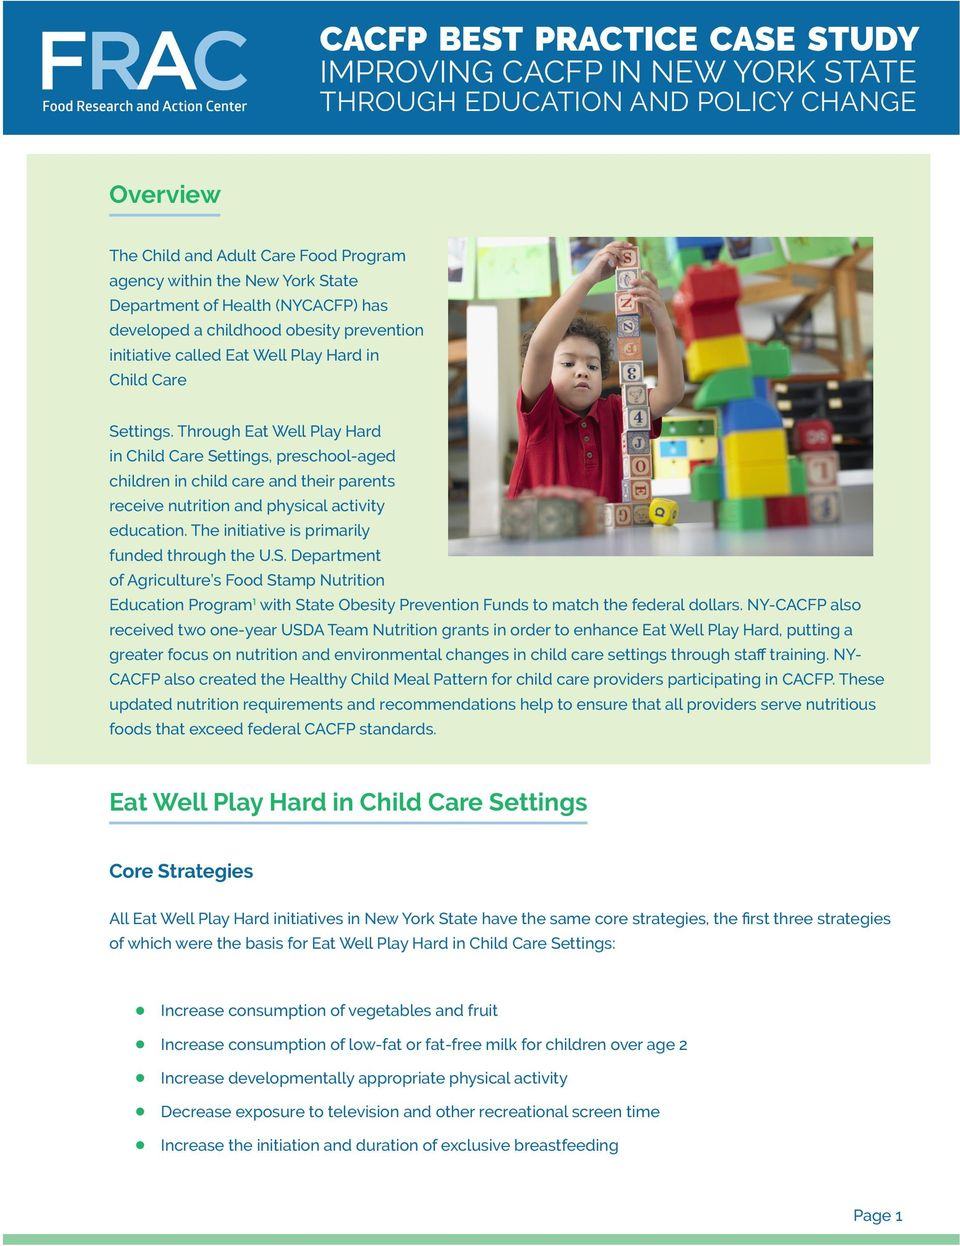 Through Eat Well Play Hard in Child Care Settings, preschl-aged children in child care and their parents receive nutrition and physical activity education.